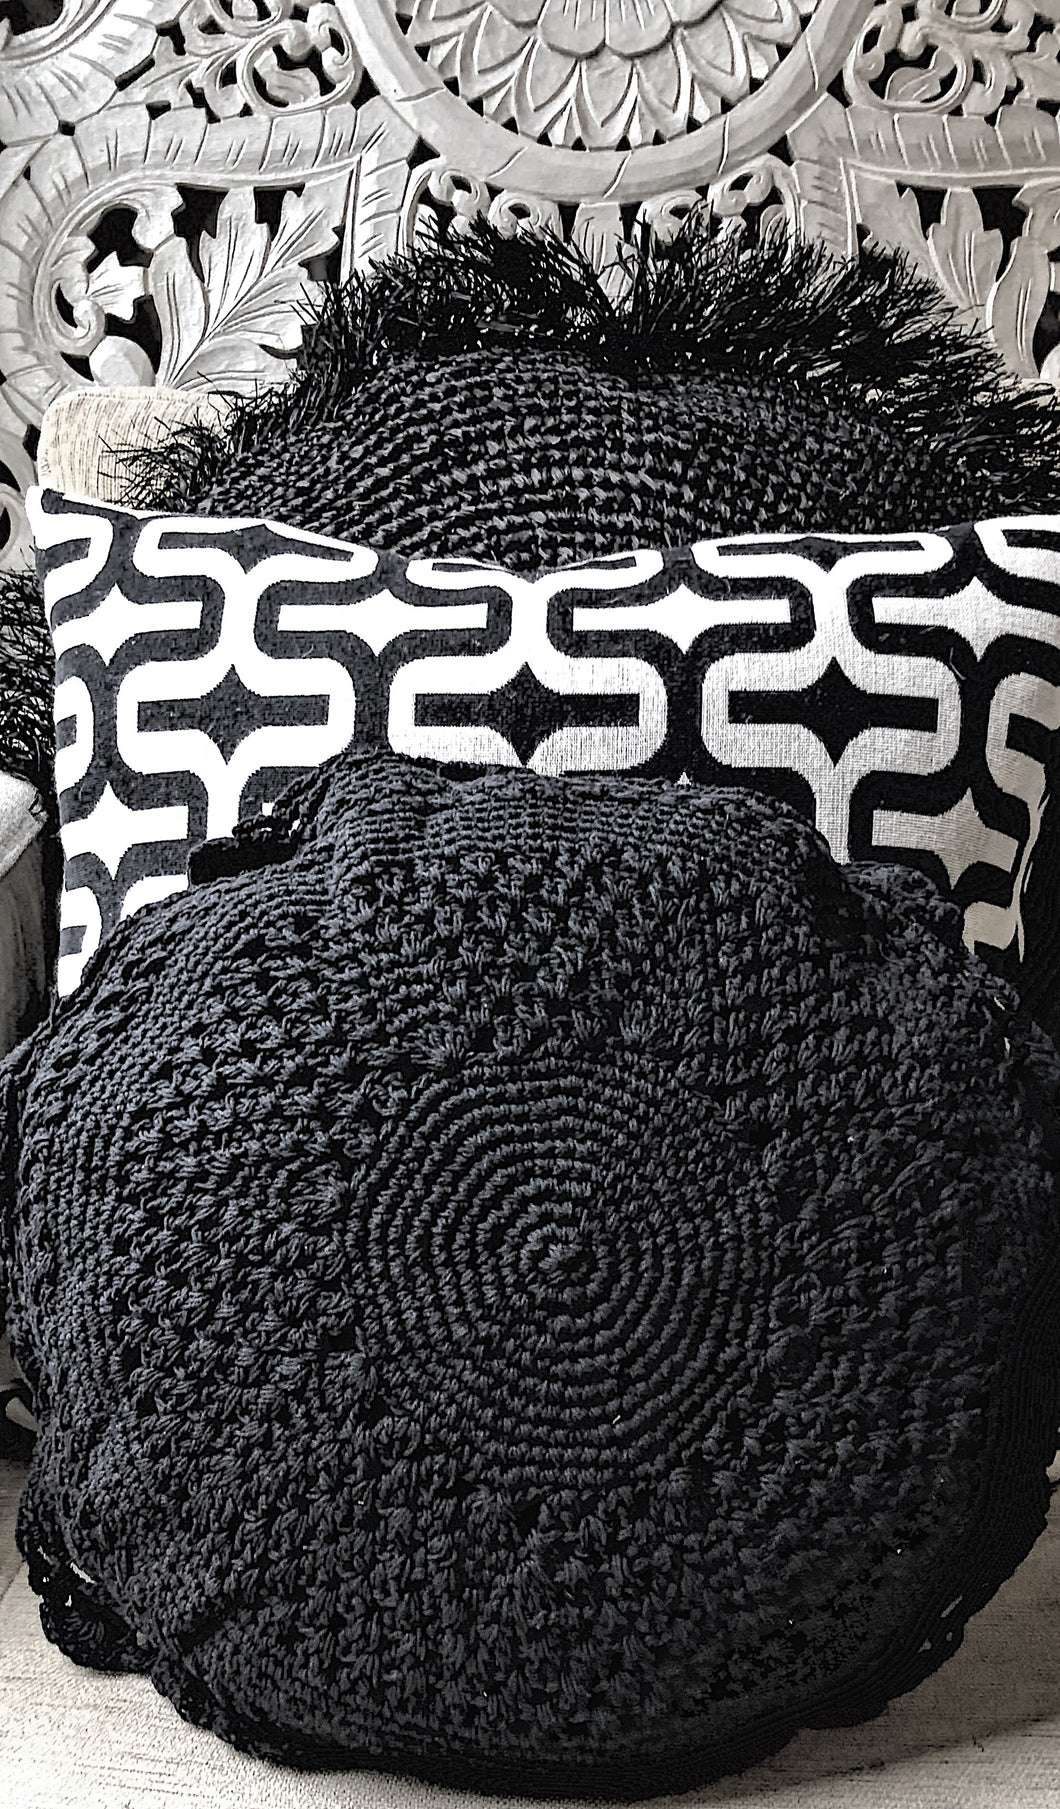 Sorrento Black Crocheted Round Cushion